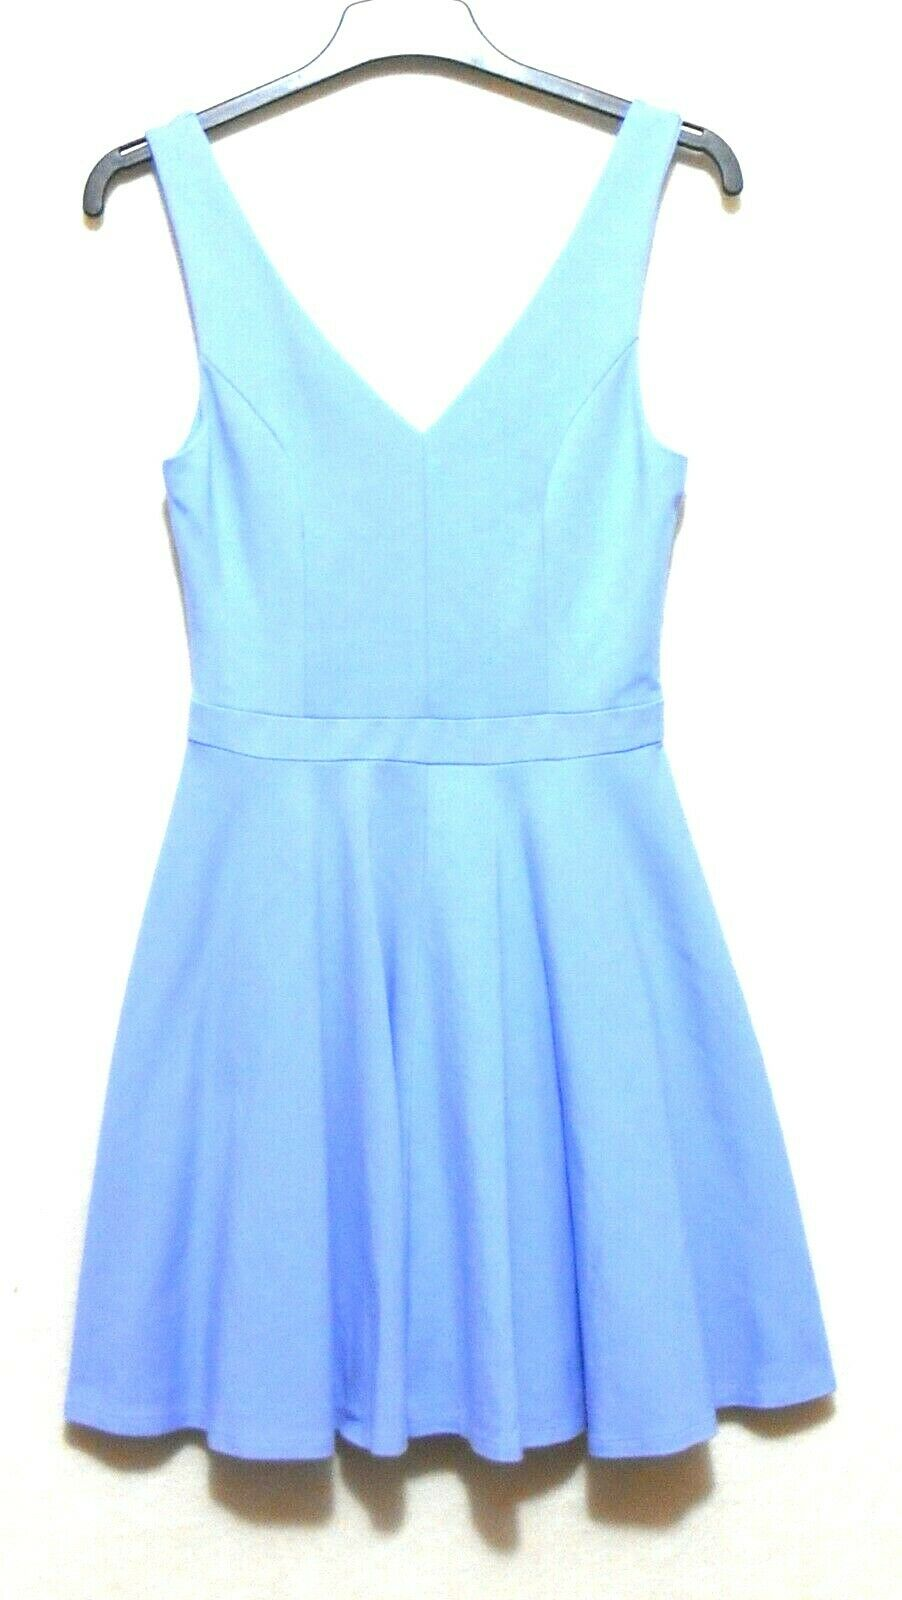 Firever New sky blue skater dress, sz. 8, NWOT